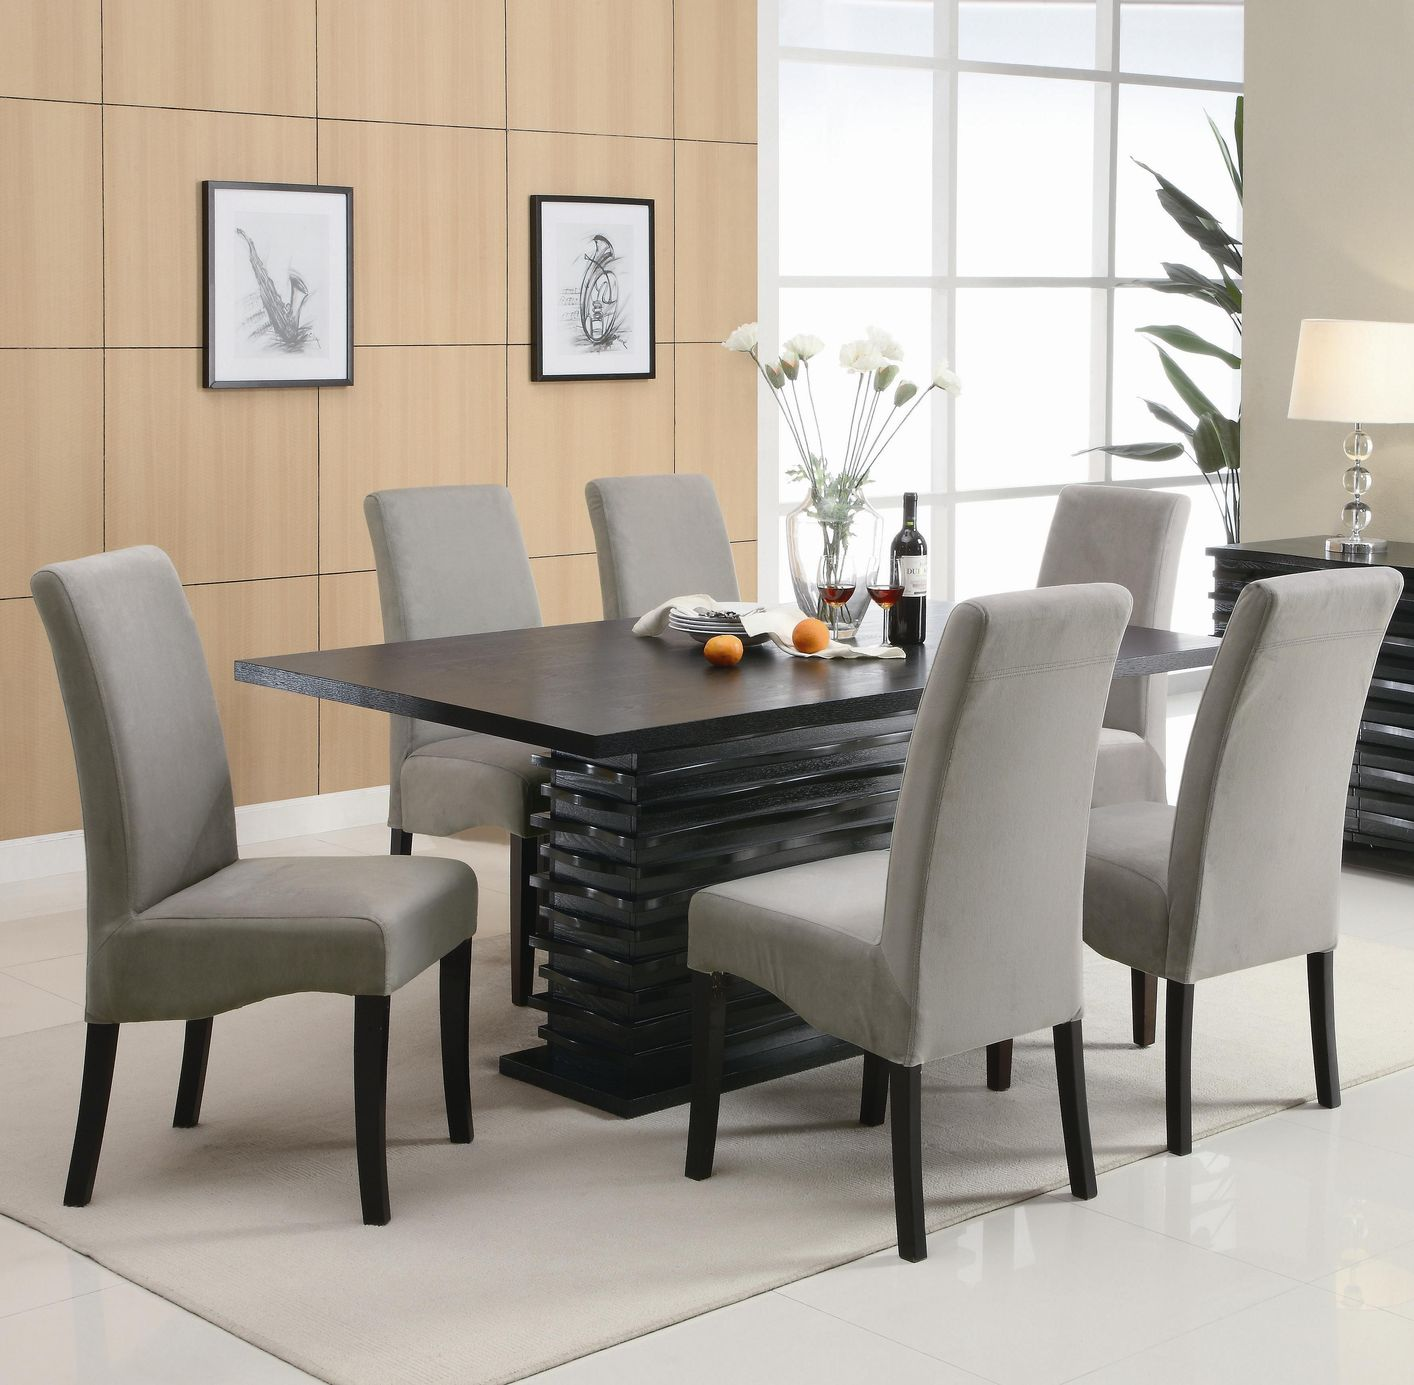 Dining Room Table Sets: Coaster Stanton 102061 102062 Black Wood Dining Table Set